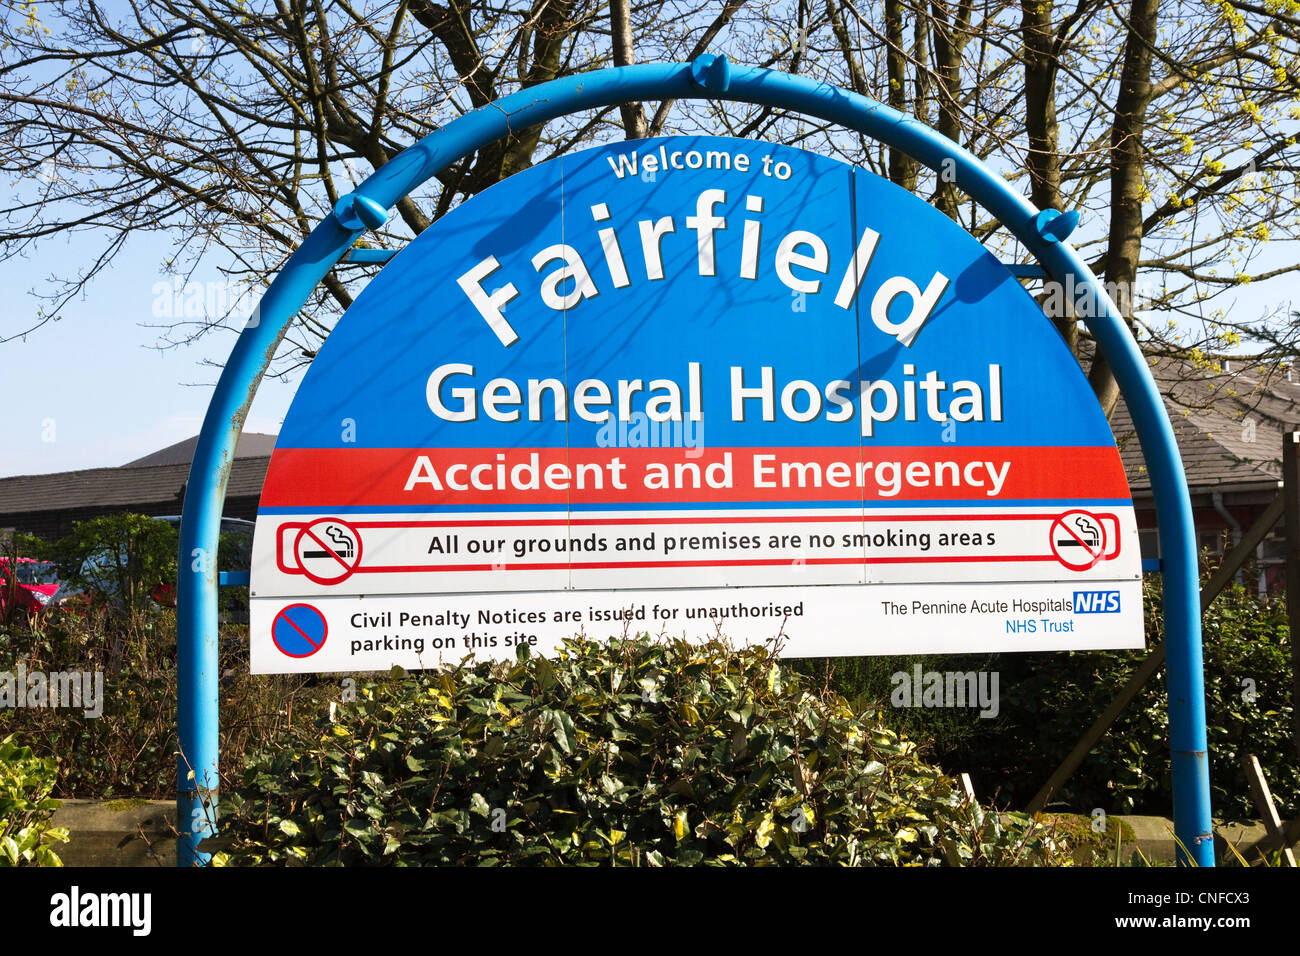 Fairfield General Hospital , Pennine Acute Hospitals NHS Trust, Bury, Greater Manchester, England, UK - Stock Image